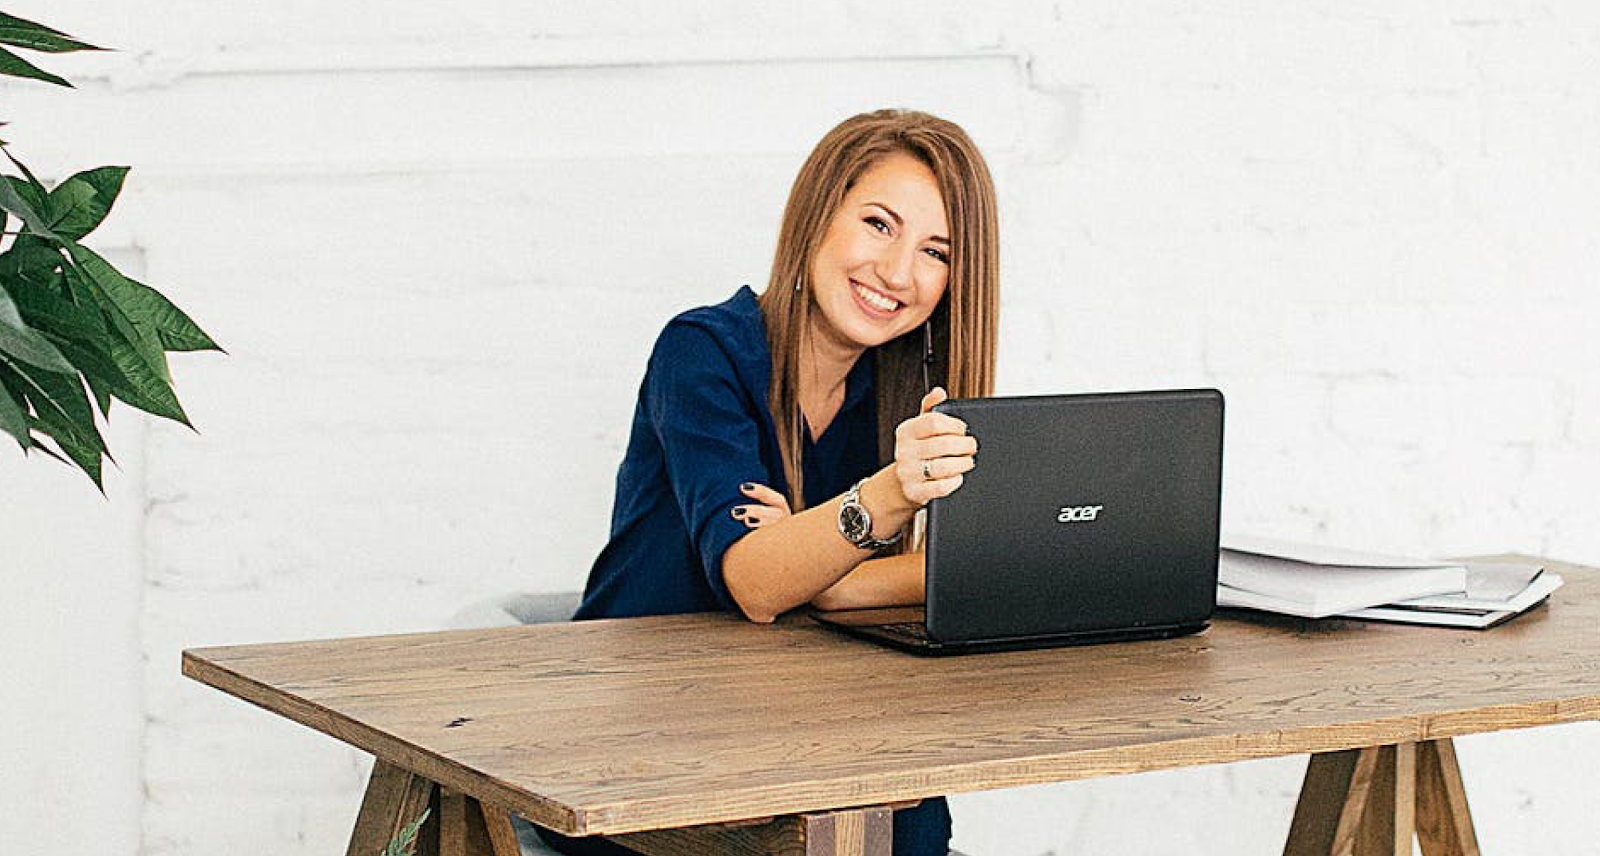 A lady working on a laptop